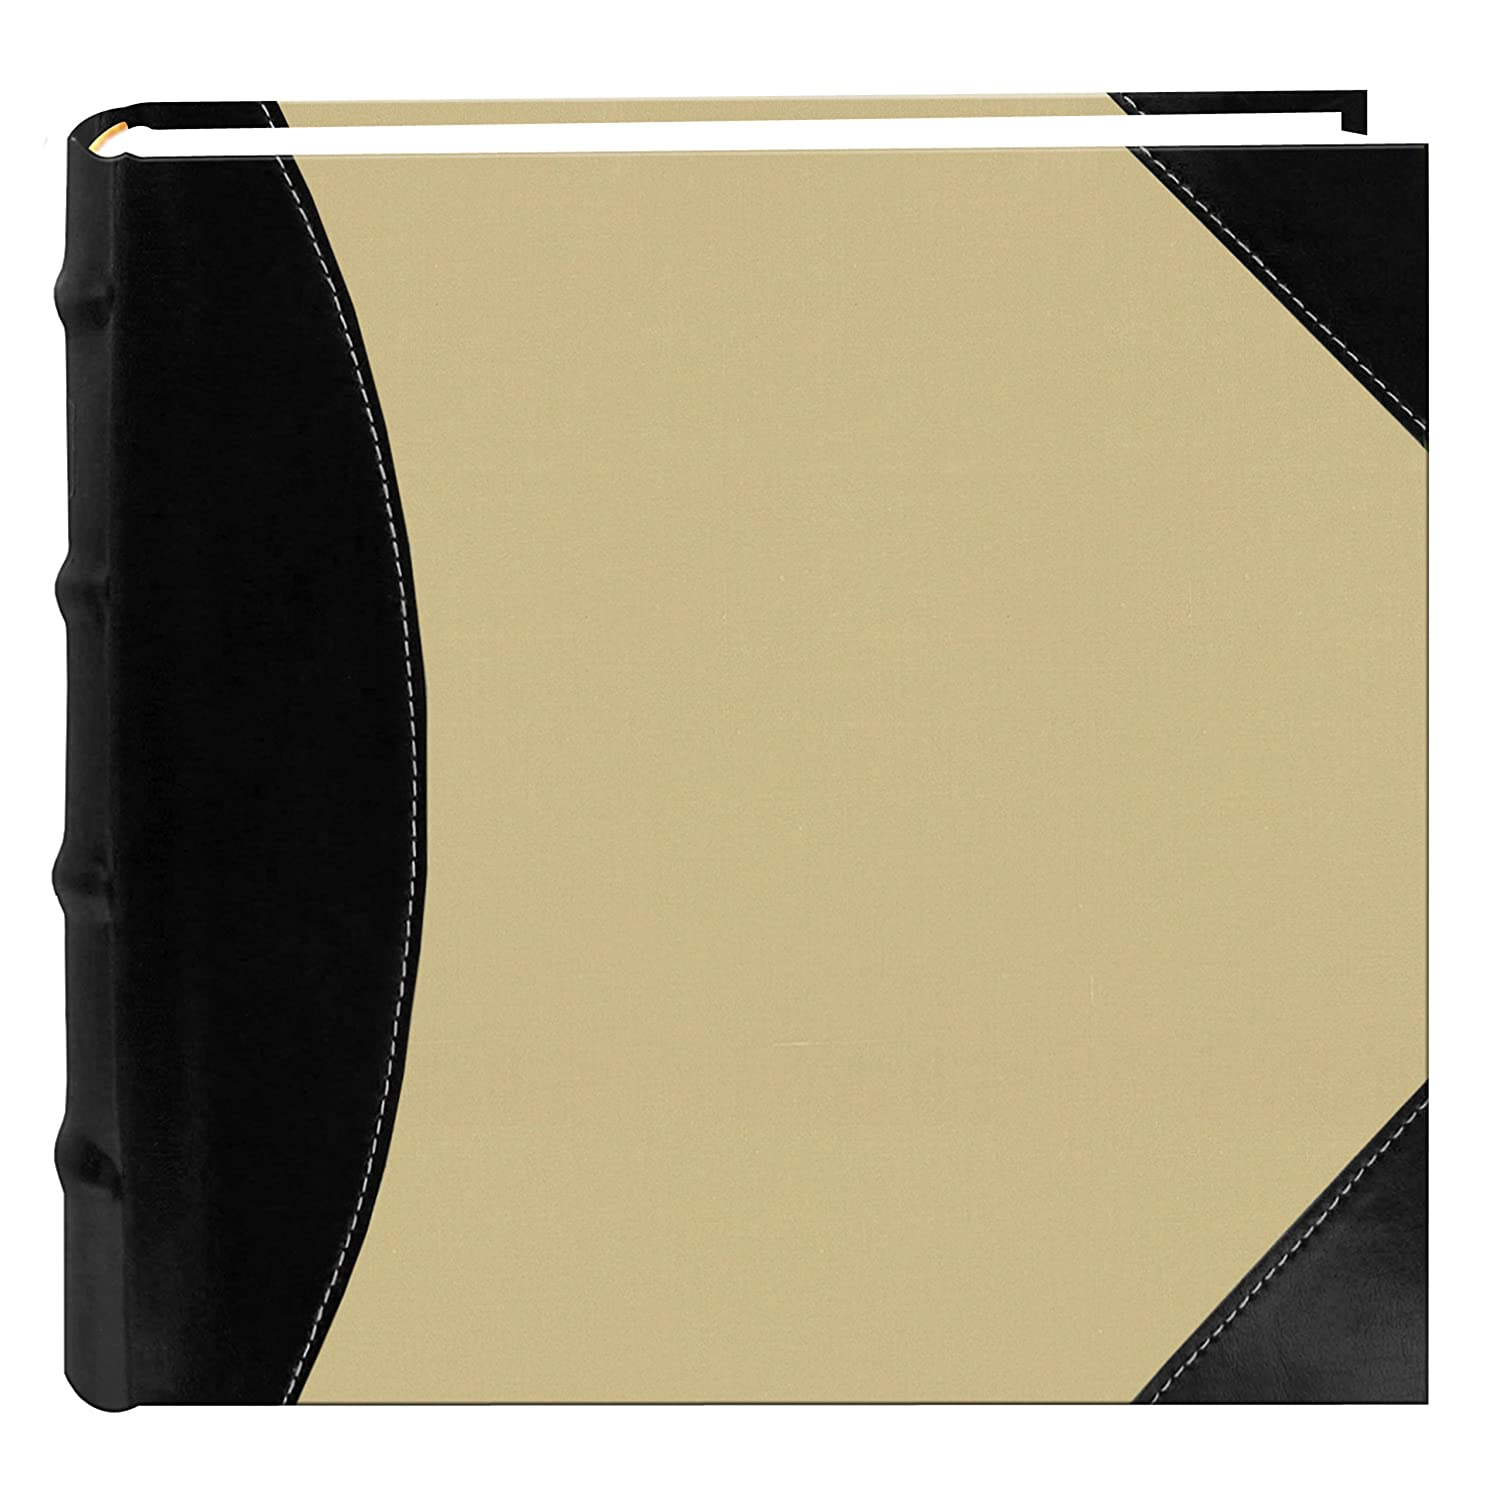 Pioneer High Capacity Sewn Fabric and Leatherette Cover Photo Album, Black on Beige